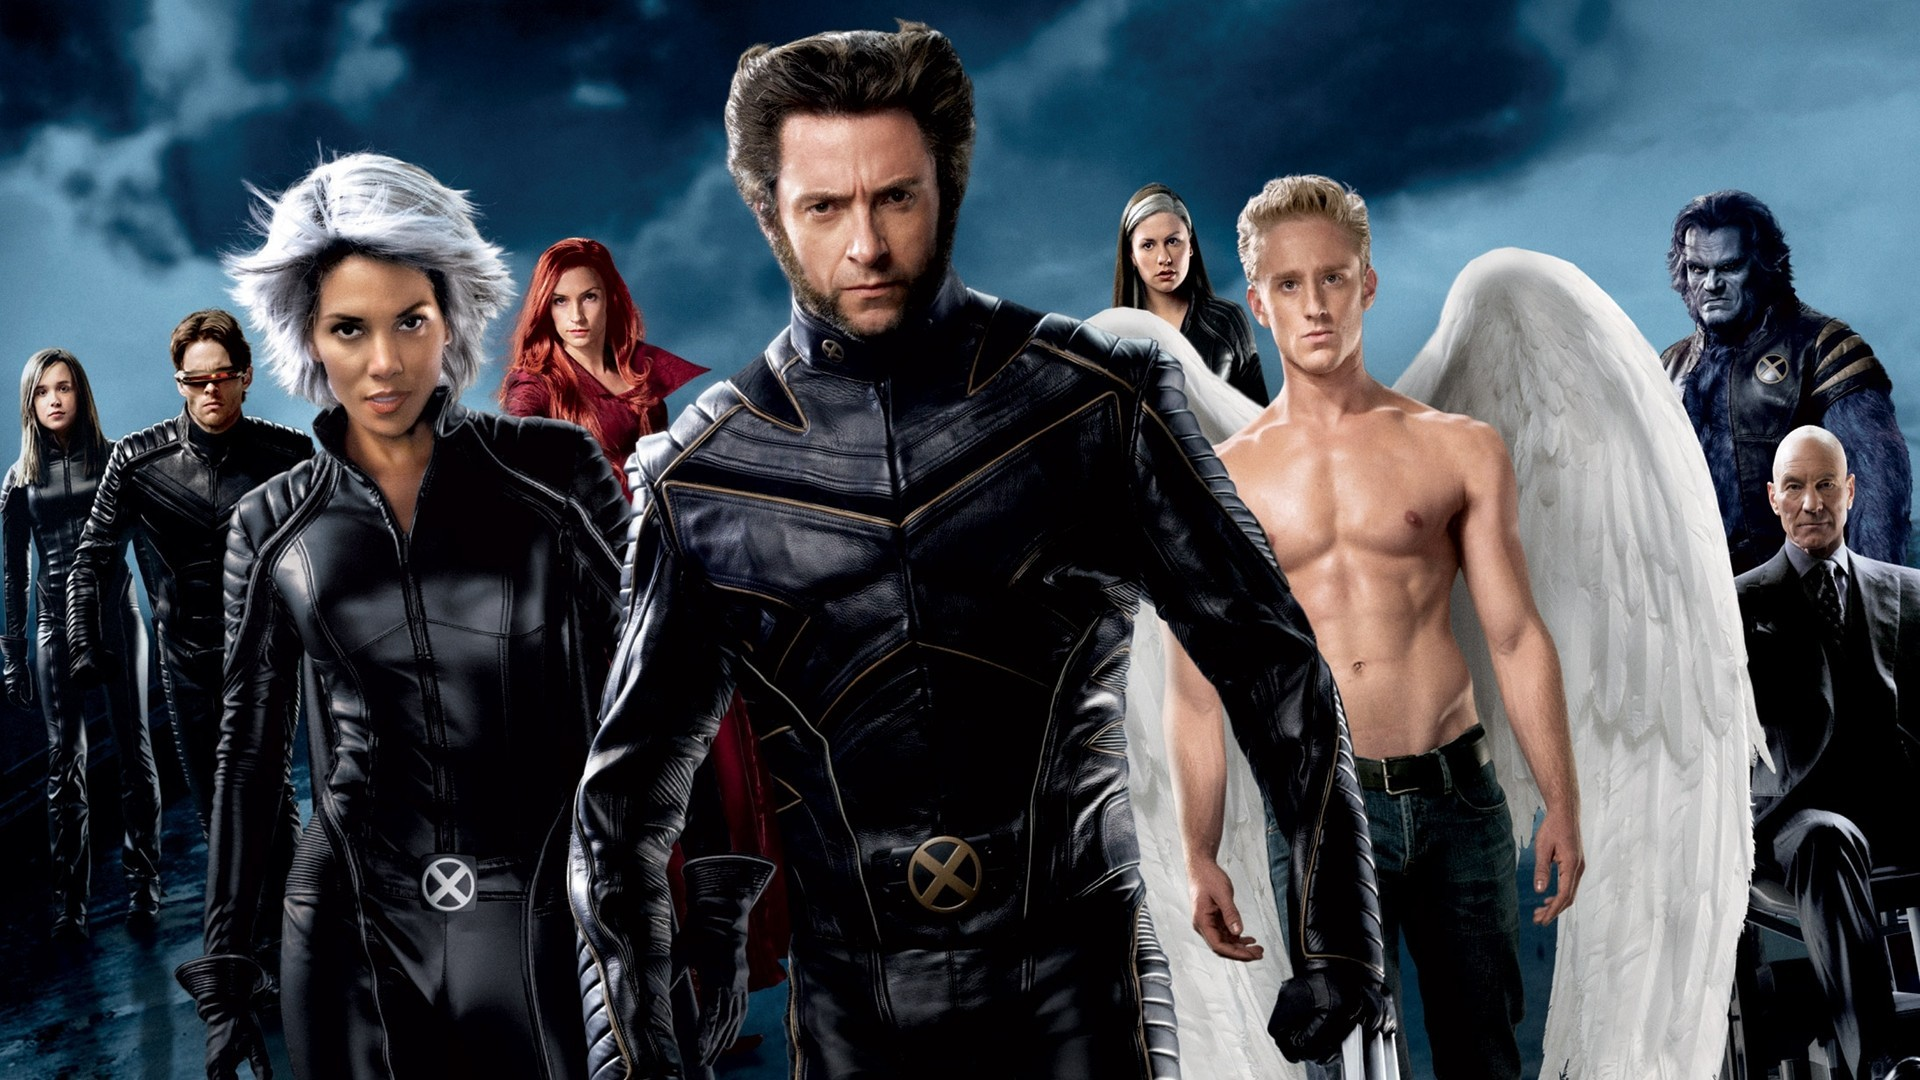 Photo of 5 X-MEN Characters Who Were Not A Part of X-MEN Titles